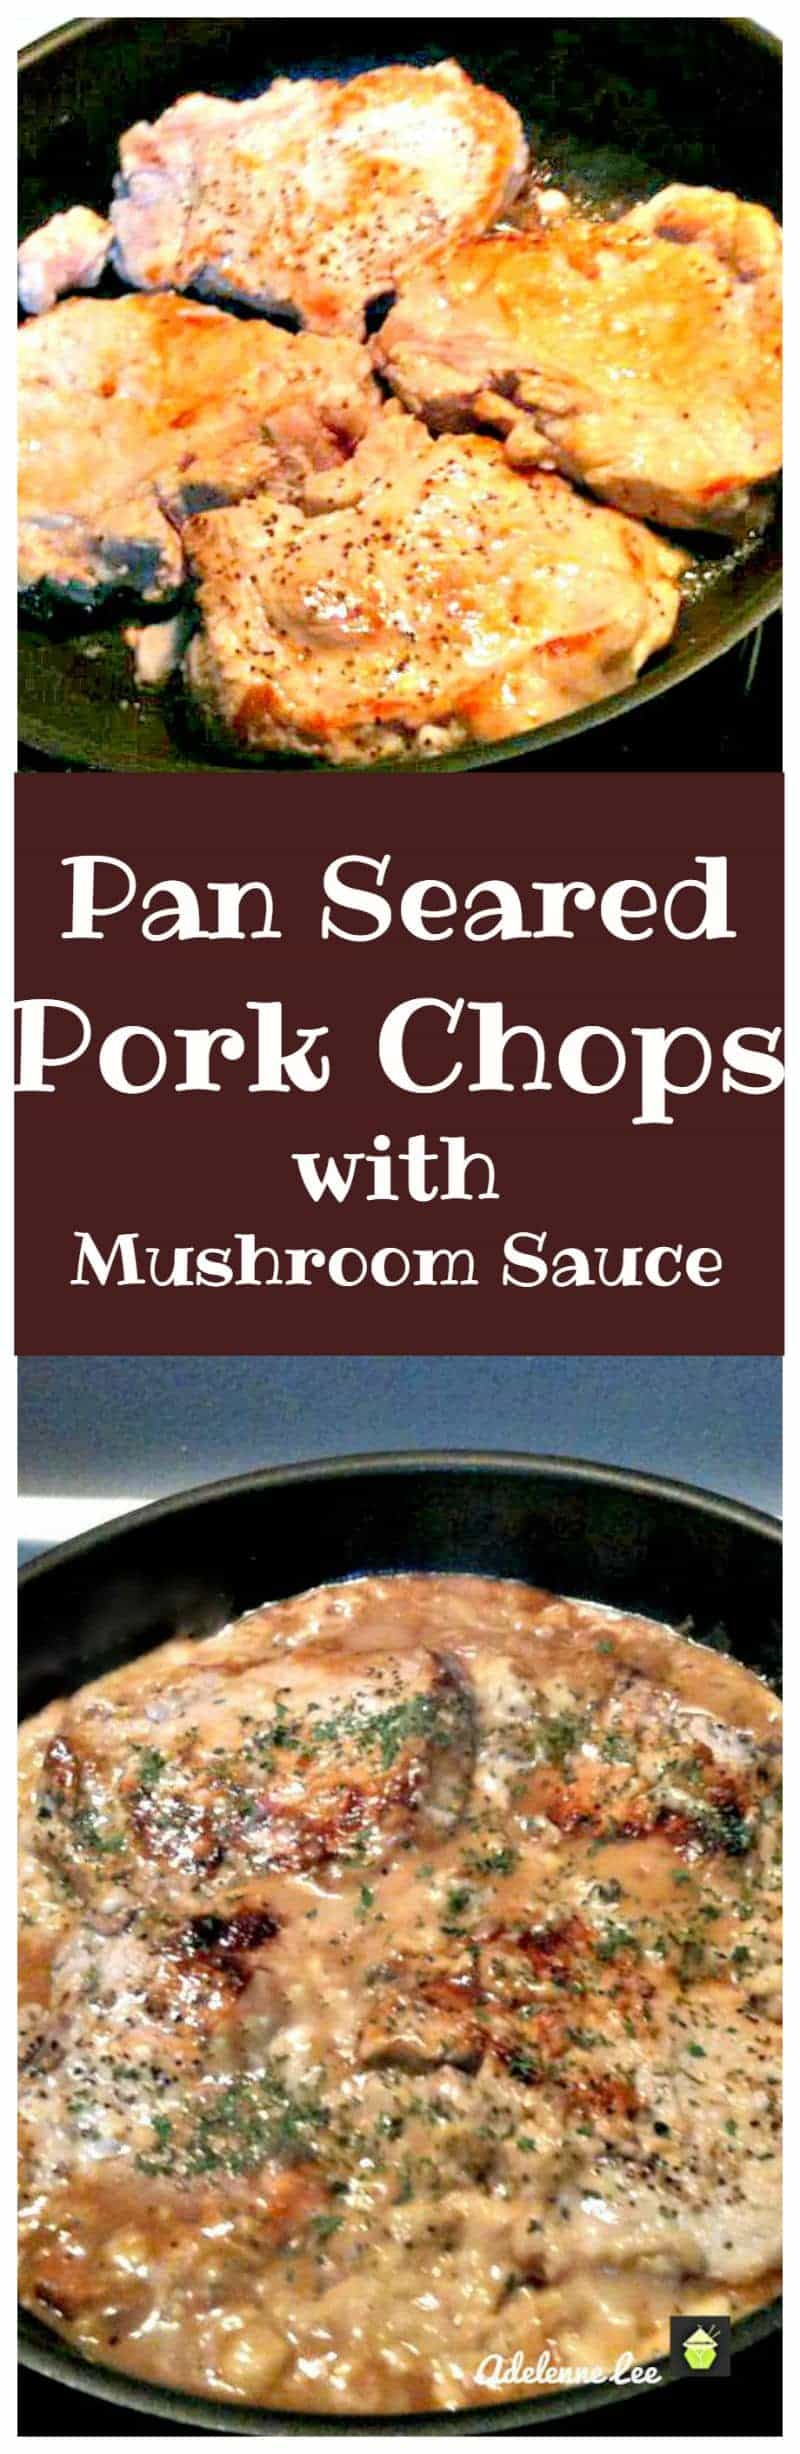 Quick & No Fussin' Pan Seared Pork Chops with Mushroom Sauce